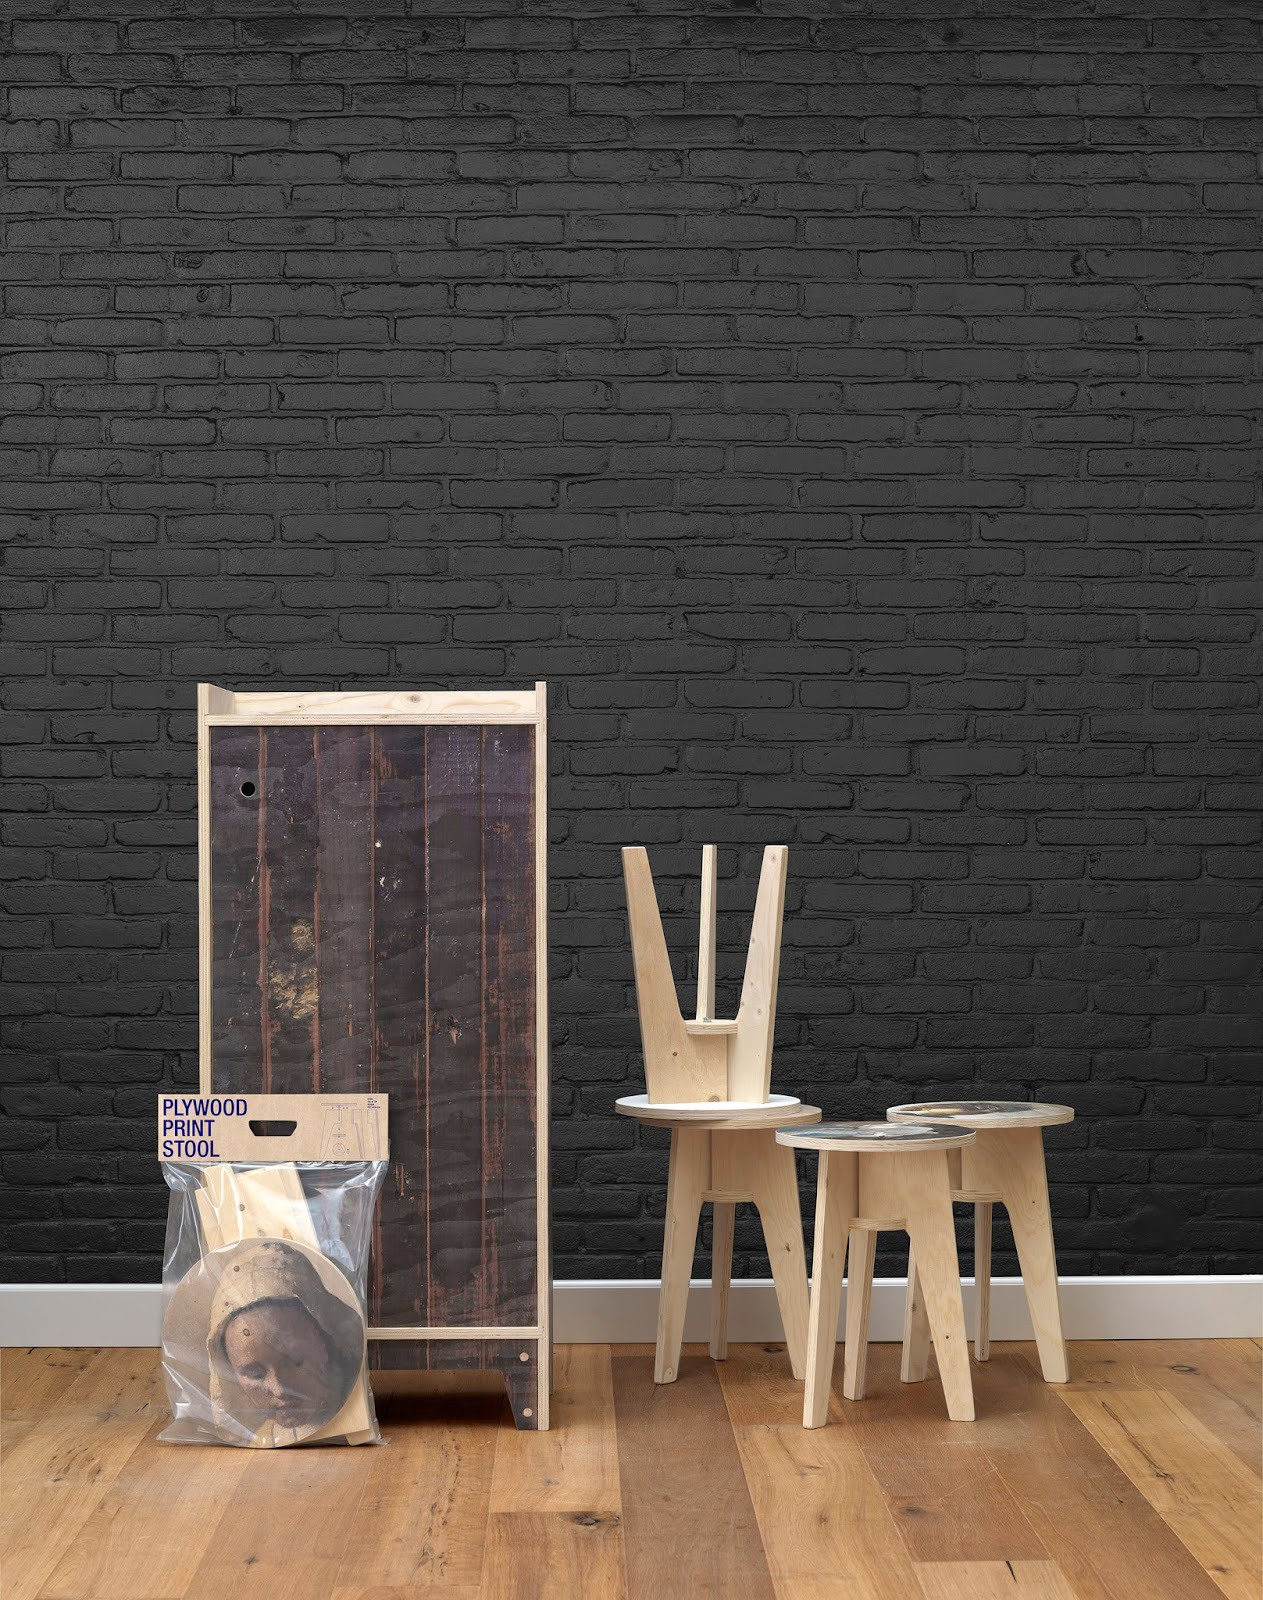 NLXL, Black Brick Wallpaper, Piet Hein Eek